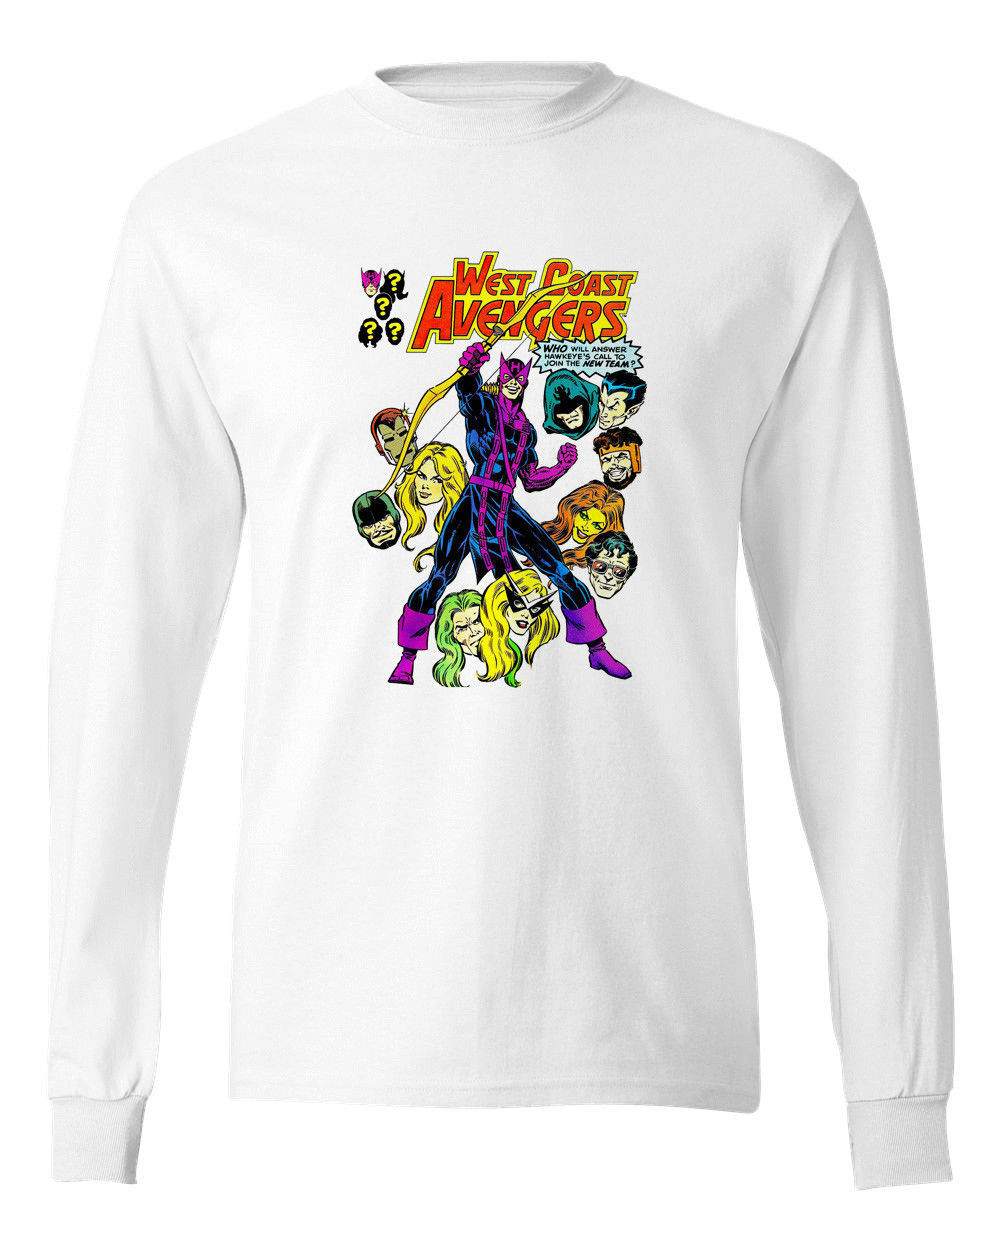 West Coast Avengers Long Sleeve T-shirt Vintage Marvel Comics 100% cotton tee